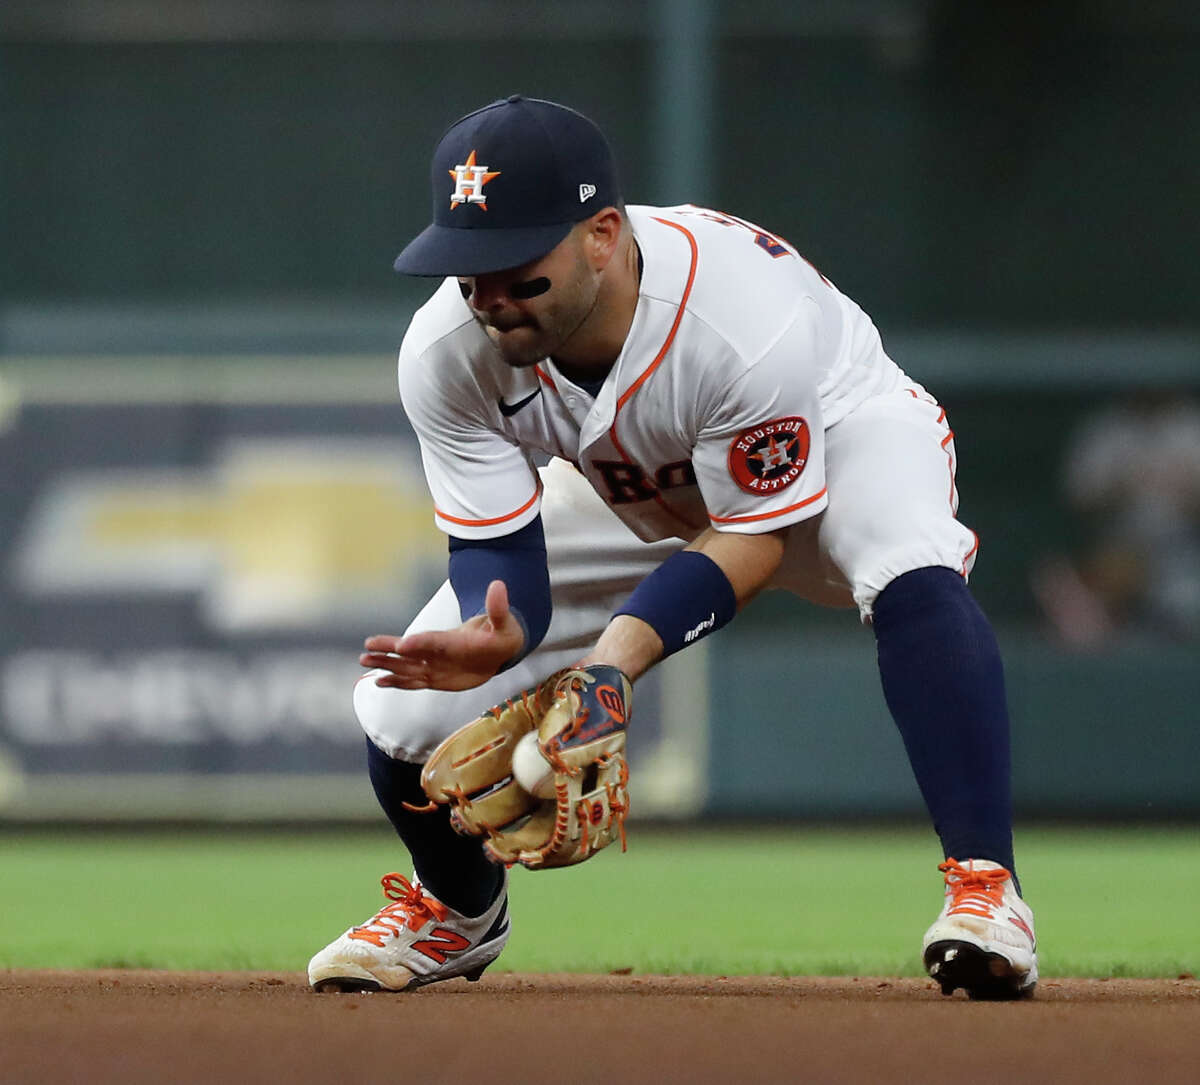 After high-profile errors in last year's ALCS, Astros second baseman Jose Altuve is returning to form defensively.